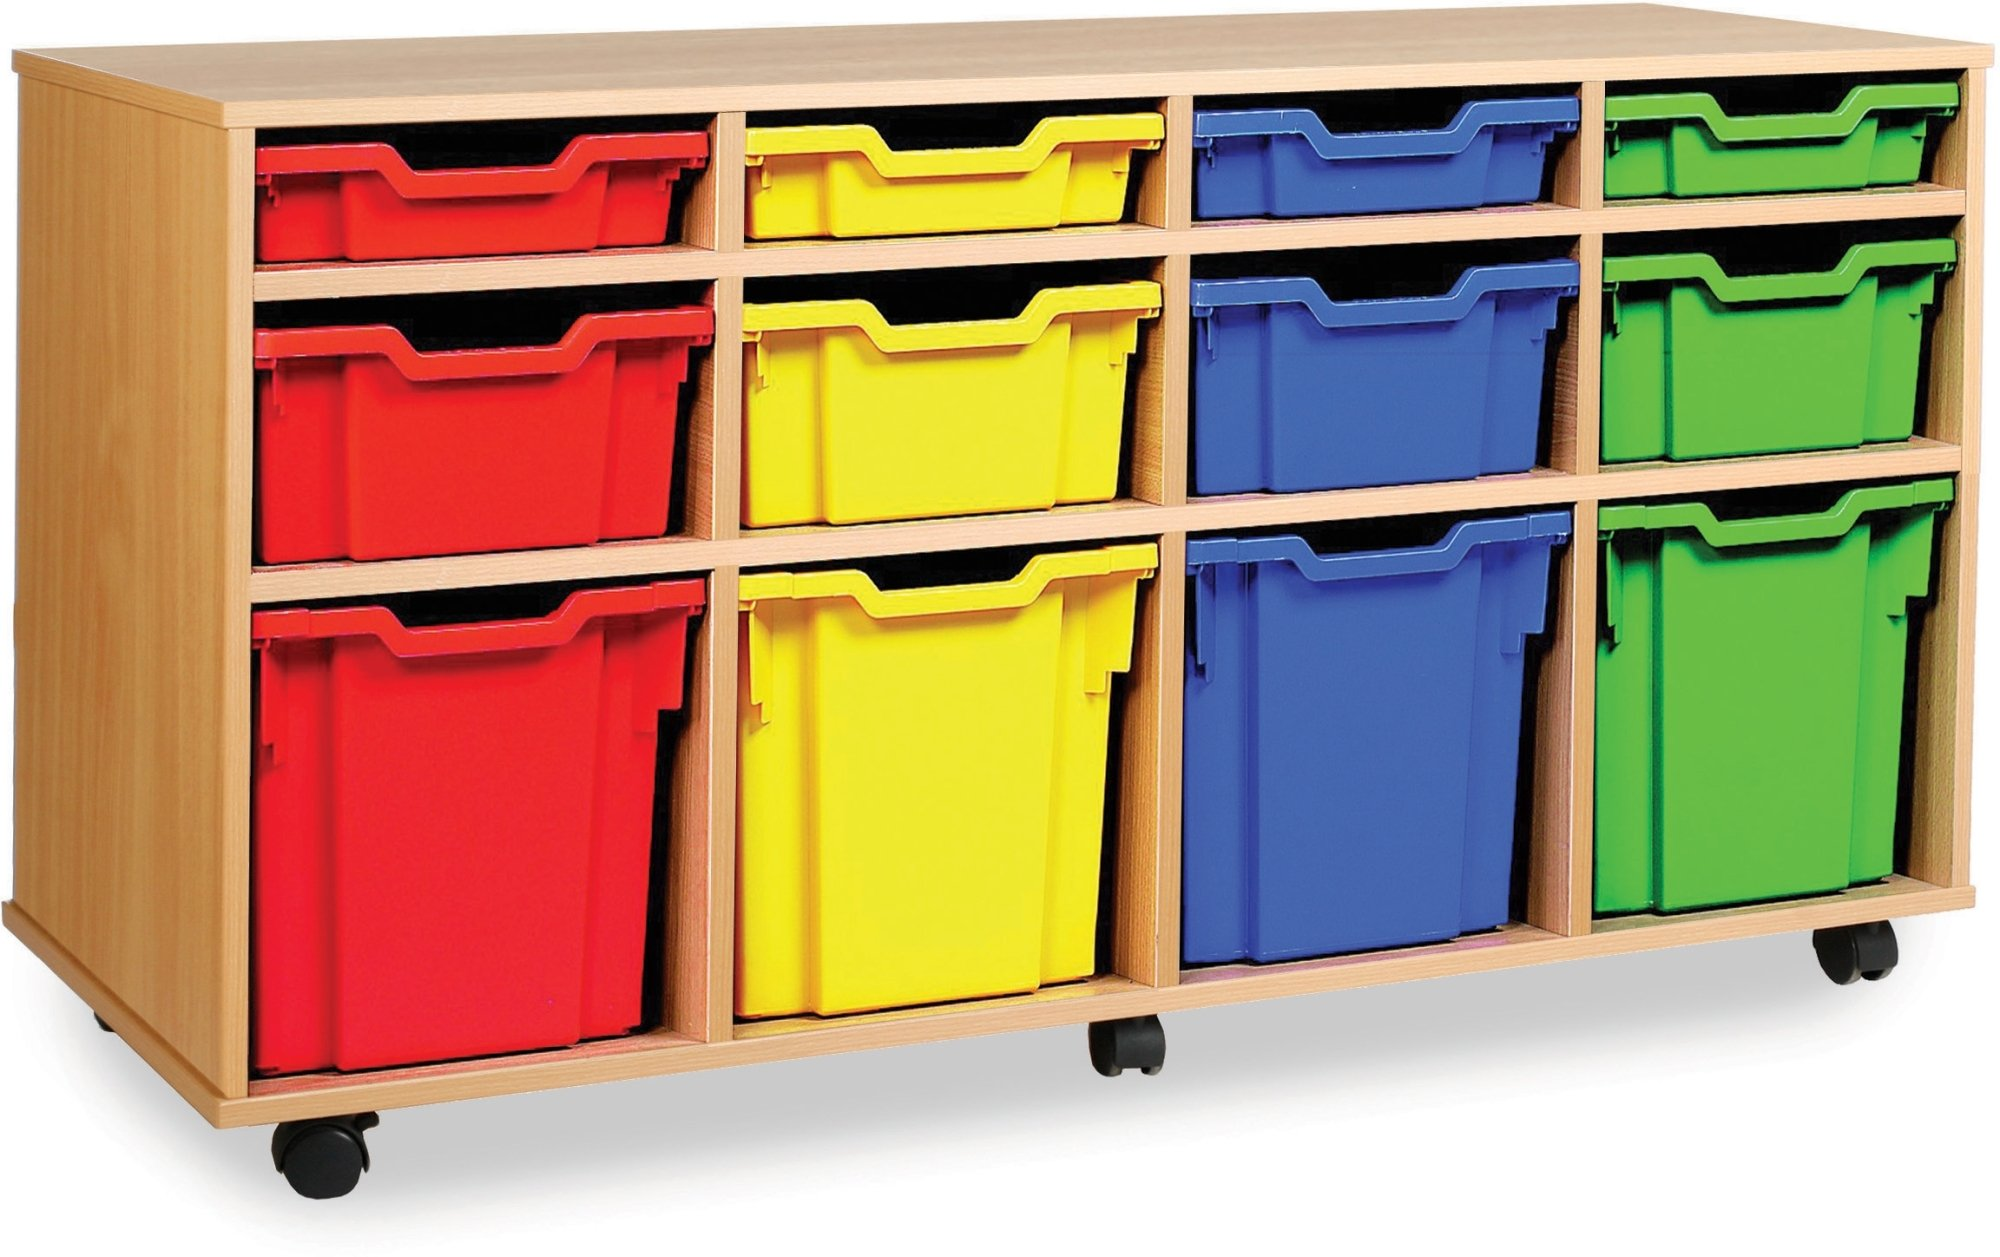 Classic tray storage unit 4 shallow 4 deep and 4 jumbo trays for Shallow shelving unit